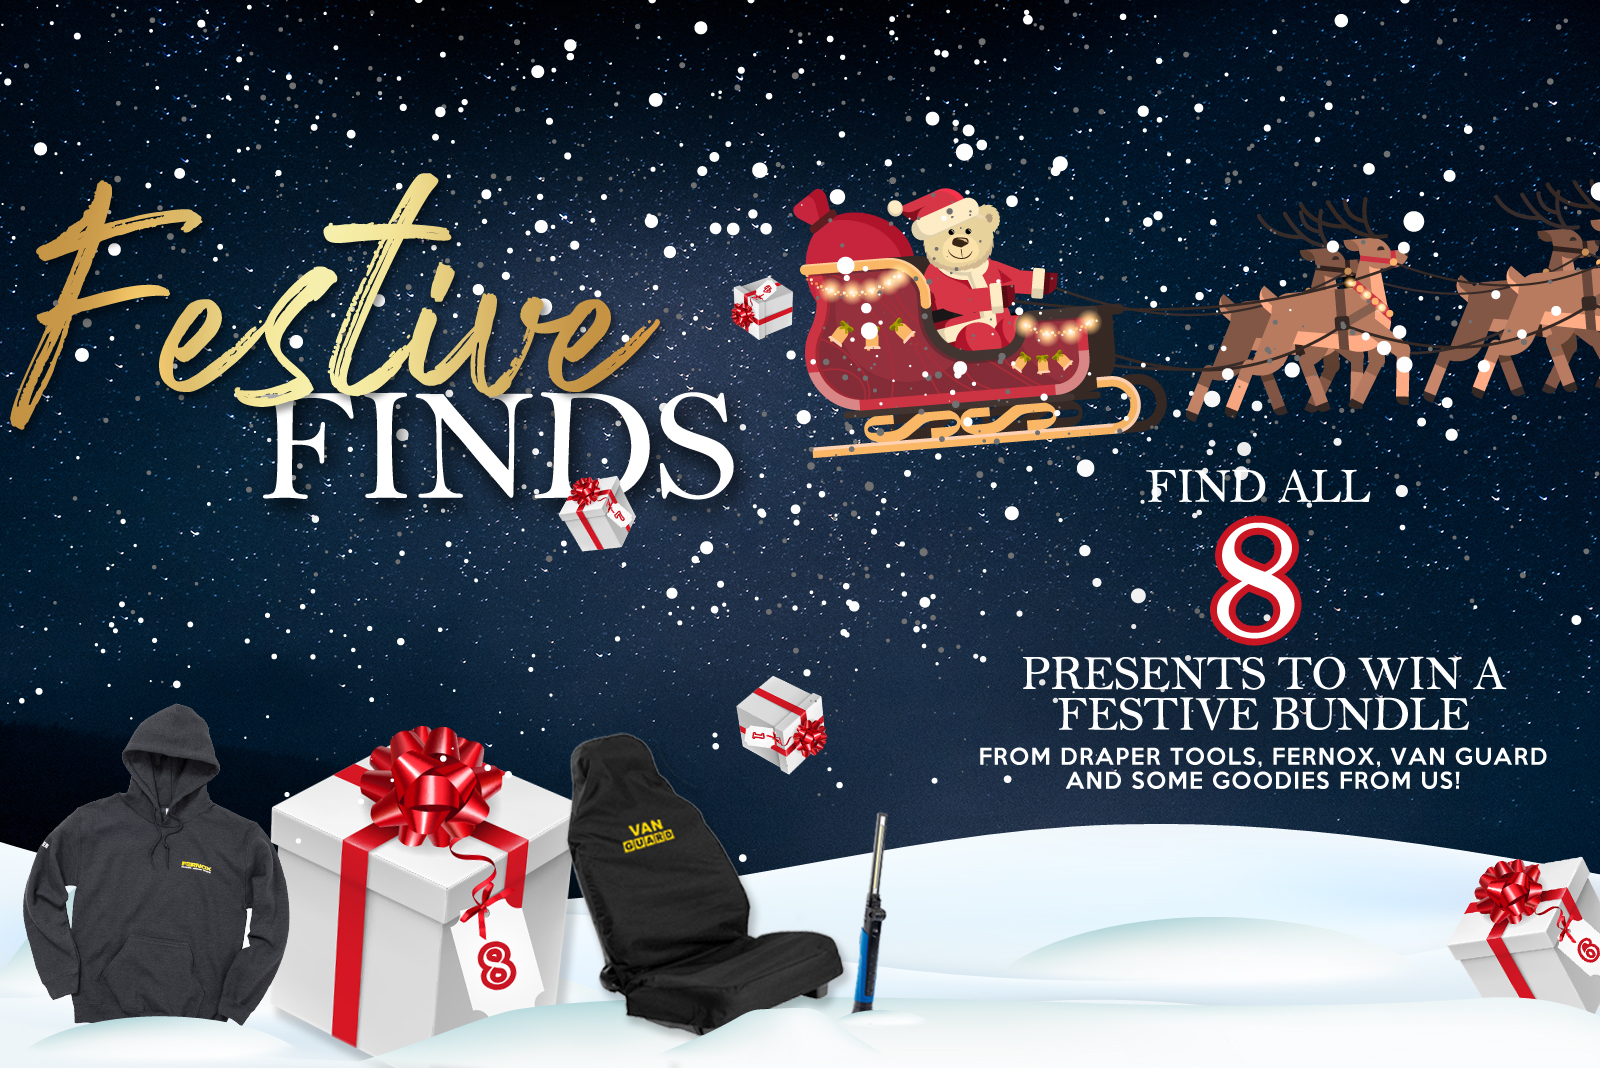 WIN a Festive Bundle this Christmas